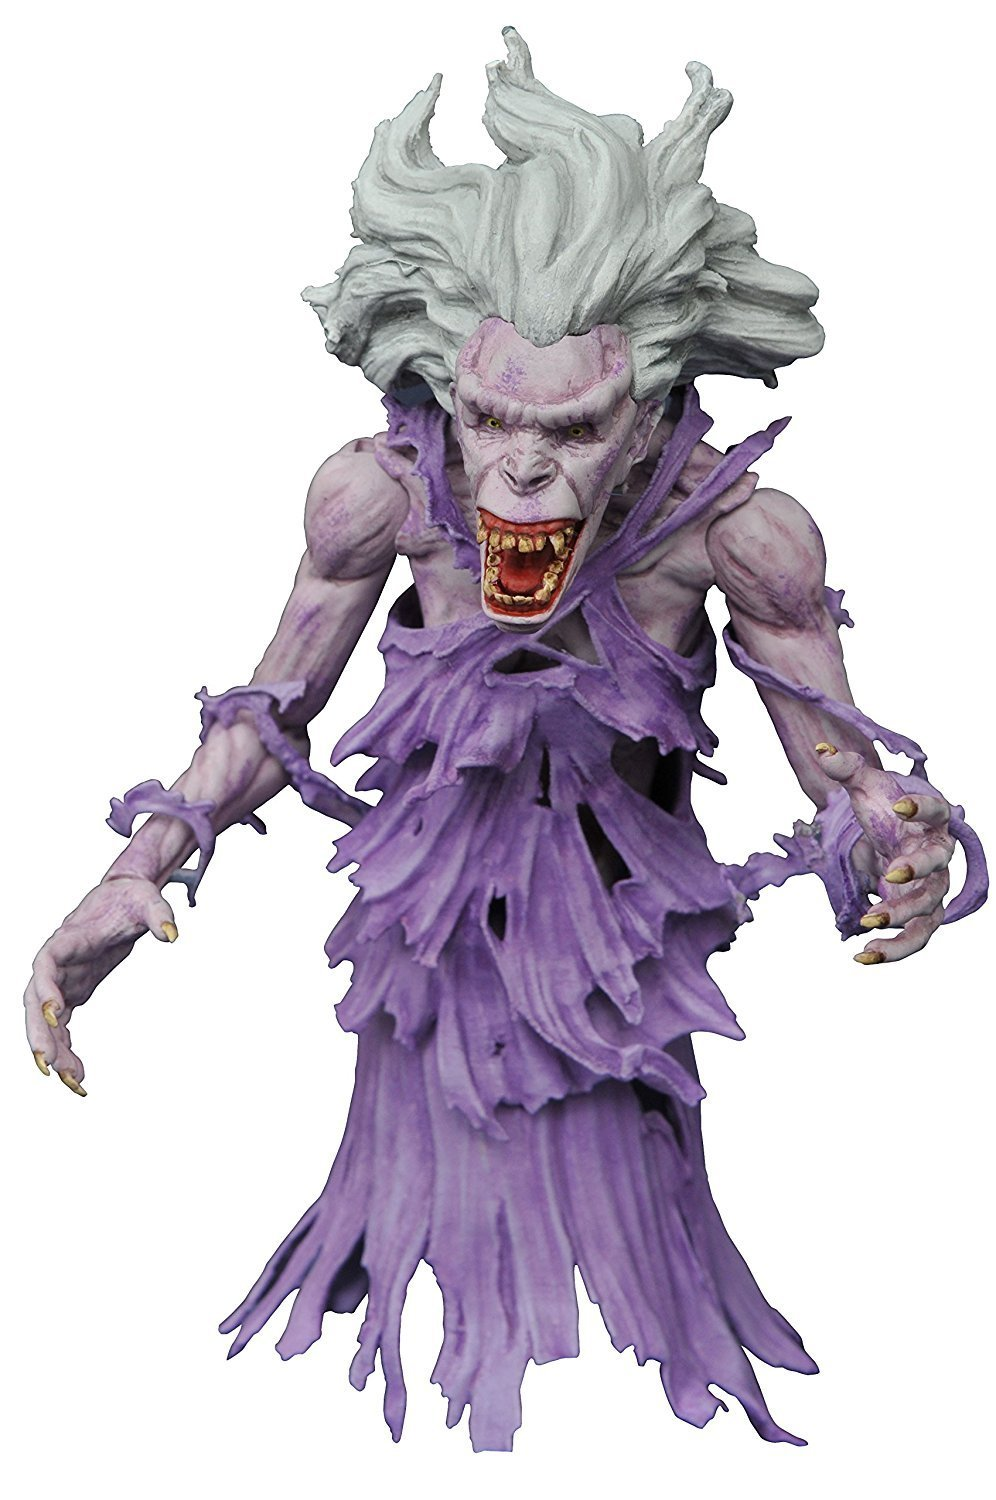 Diamond Select Toys Ghostbusters Select Series 5 Library Ghost Action Figure by DIAMOND SELECT TOYS LLC